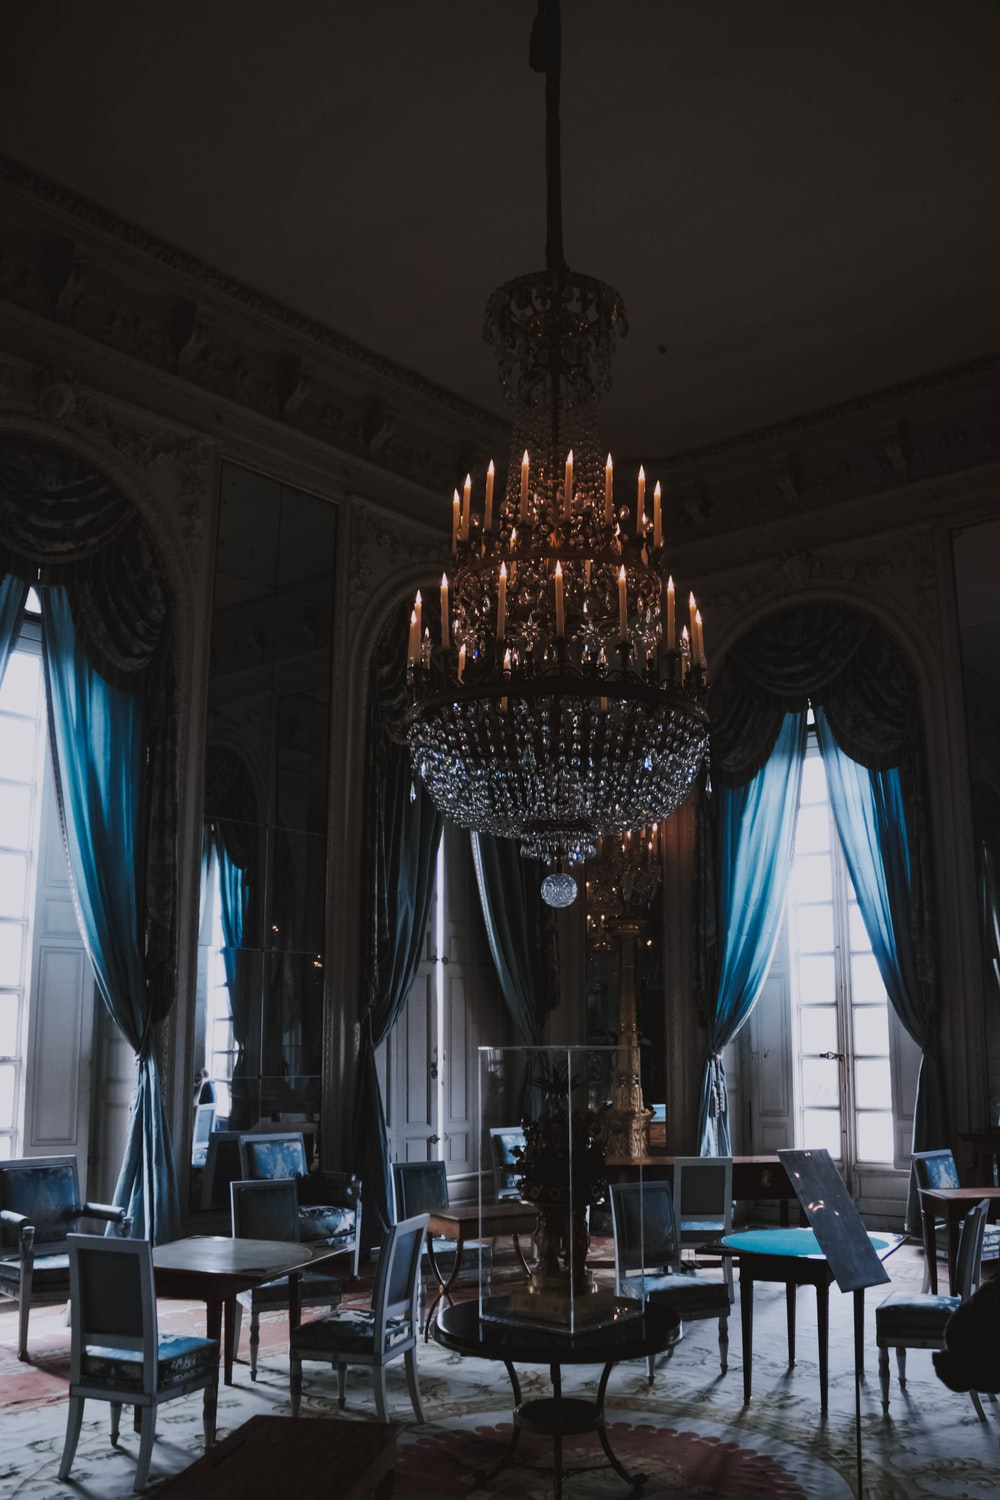 empty dining chairs under chandelier